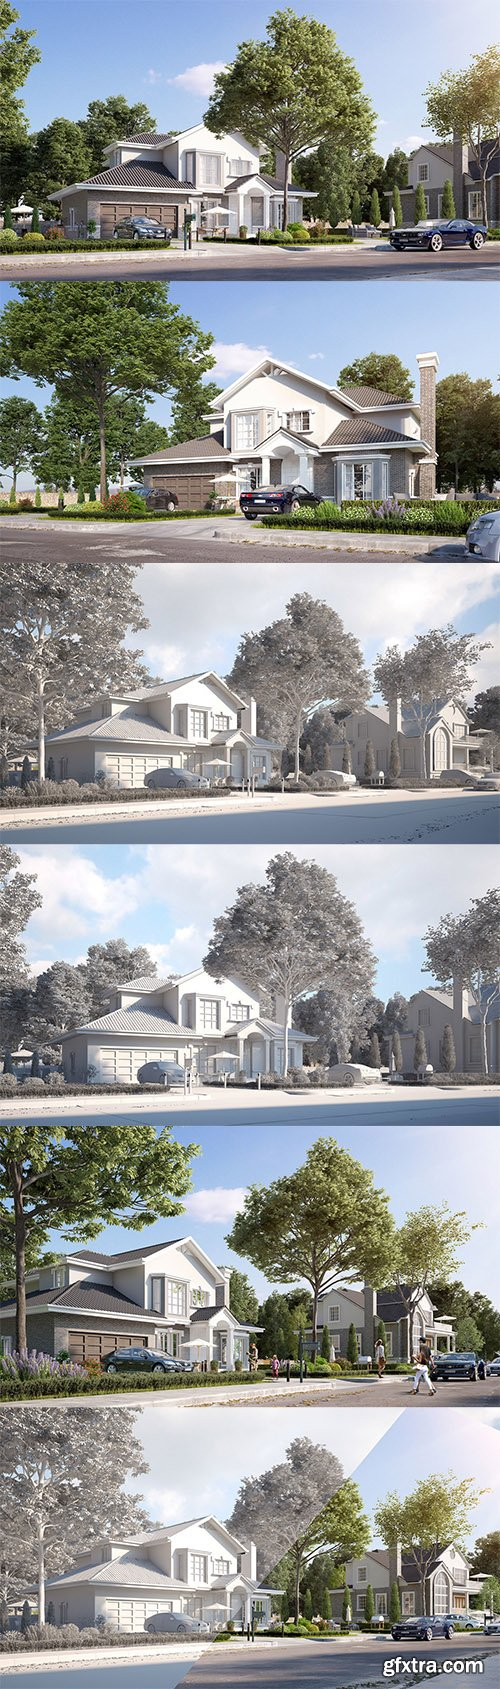 Cgtrader - Exterior beautiful house best rendering Low-poly 3D model